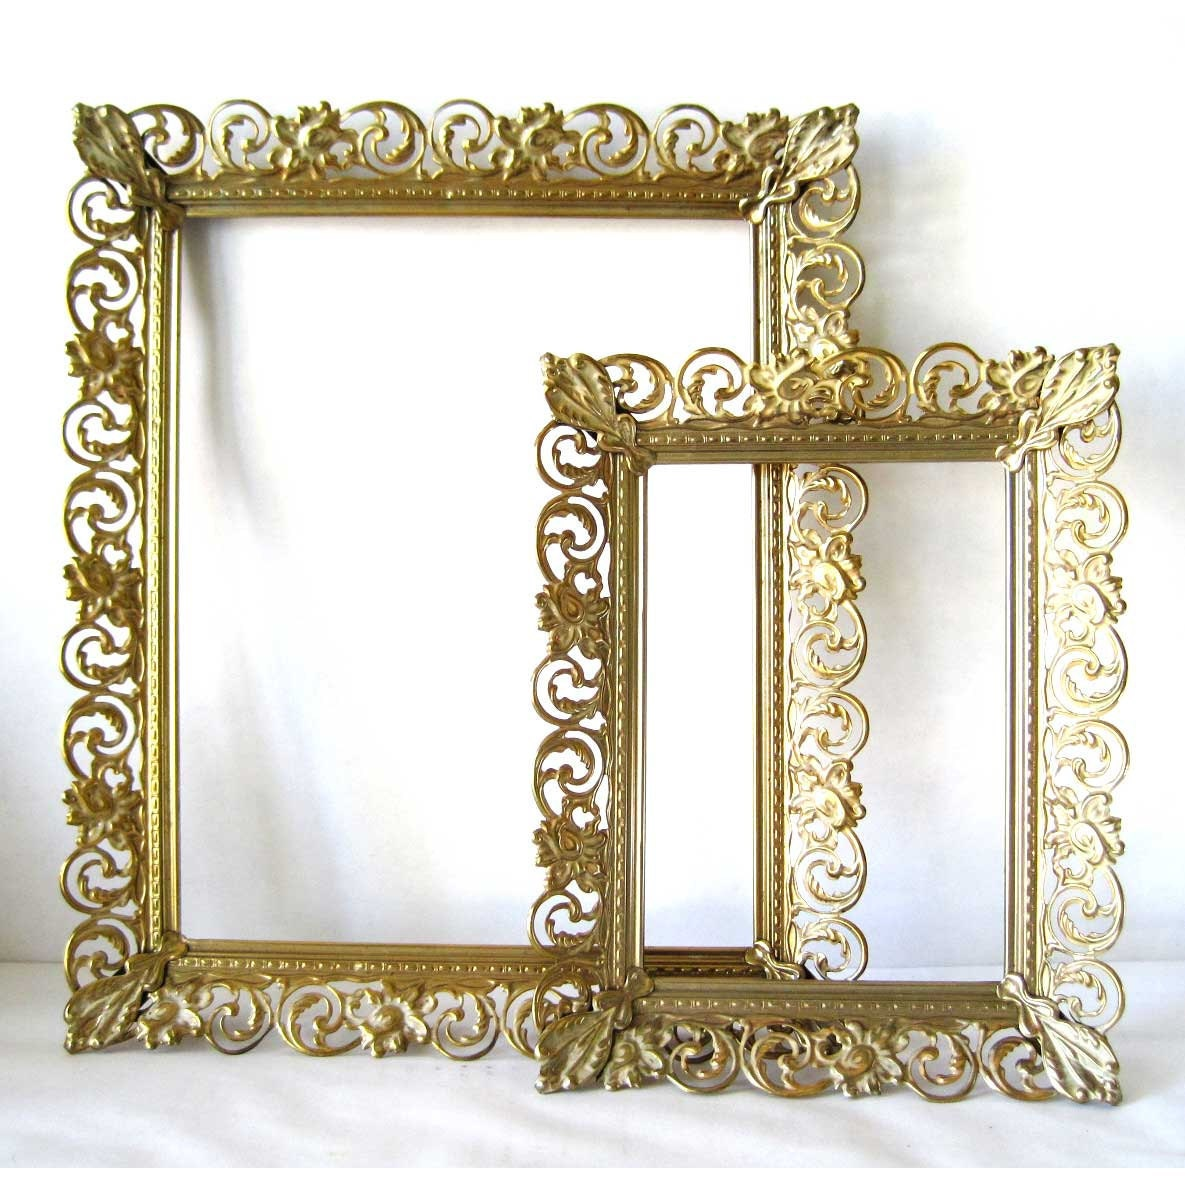 I Designed A Vintage Looking Border Art For You To Use In: Vintage Filigree Frame Victorian Wall Decor Golden Ornate